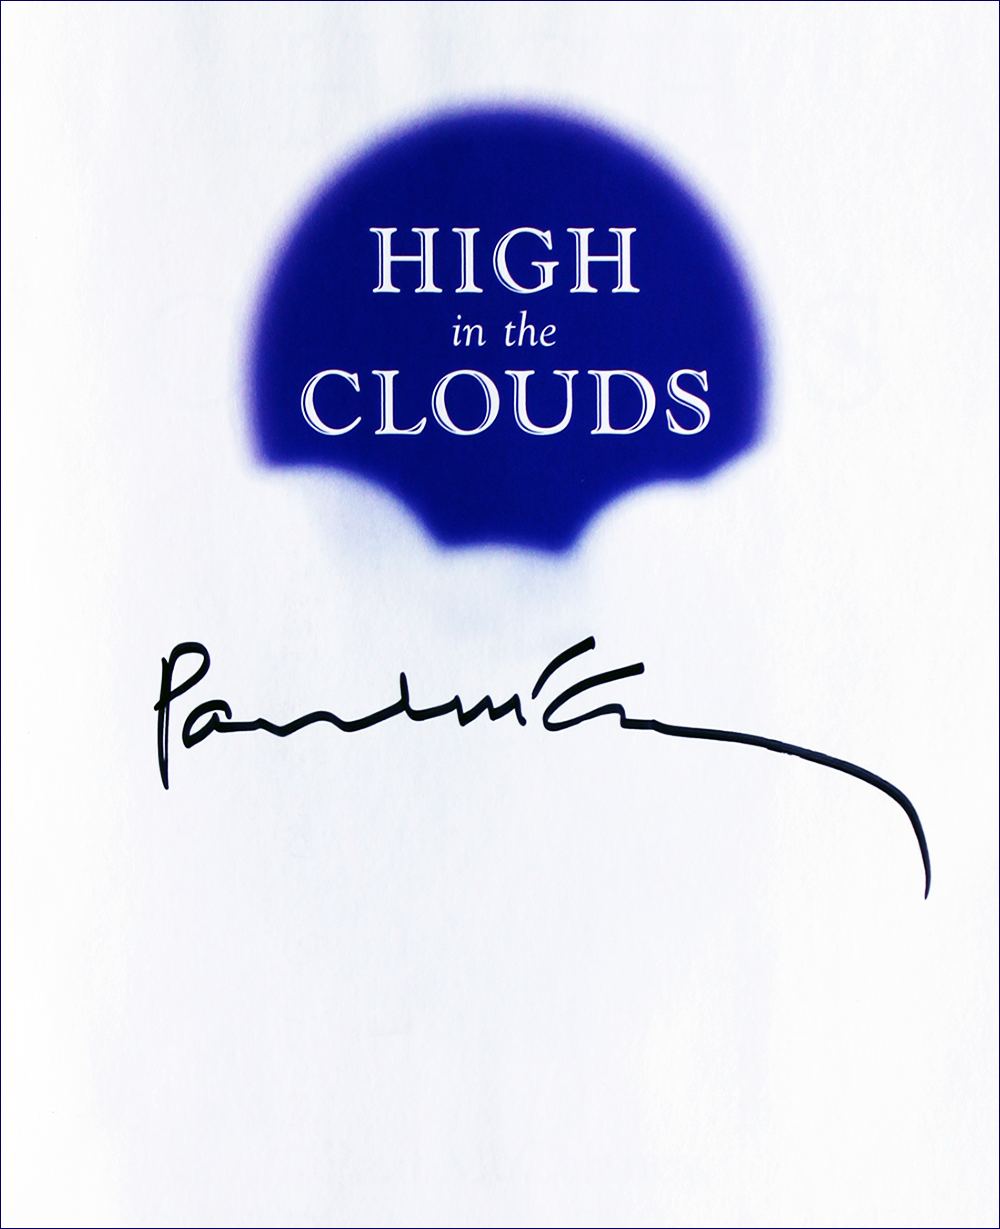 Book - High in the Clouds - Paul McCartney - Inside #3